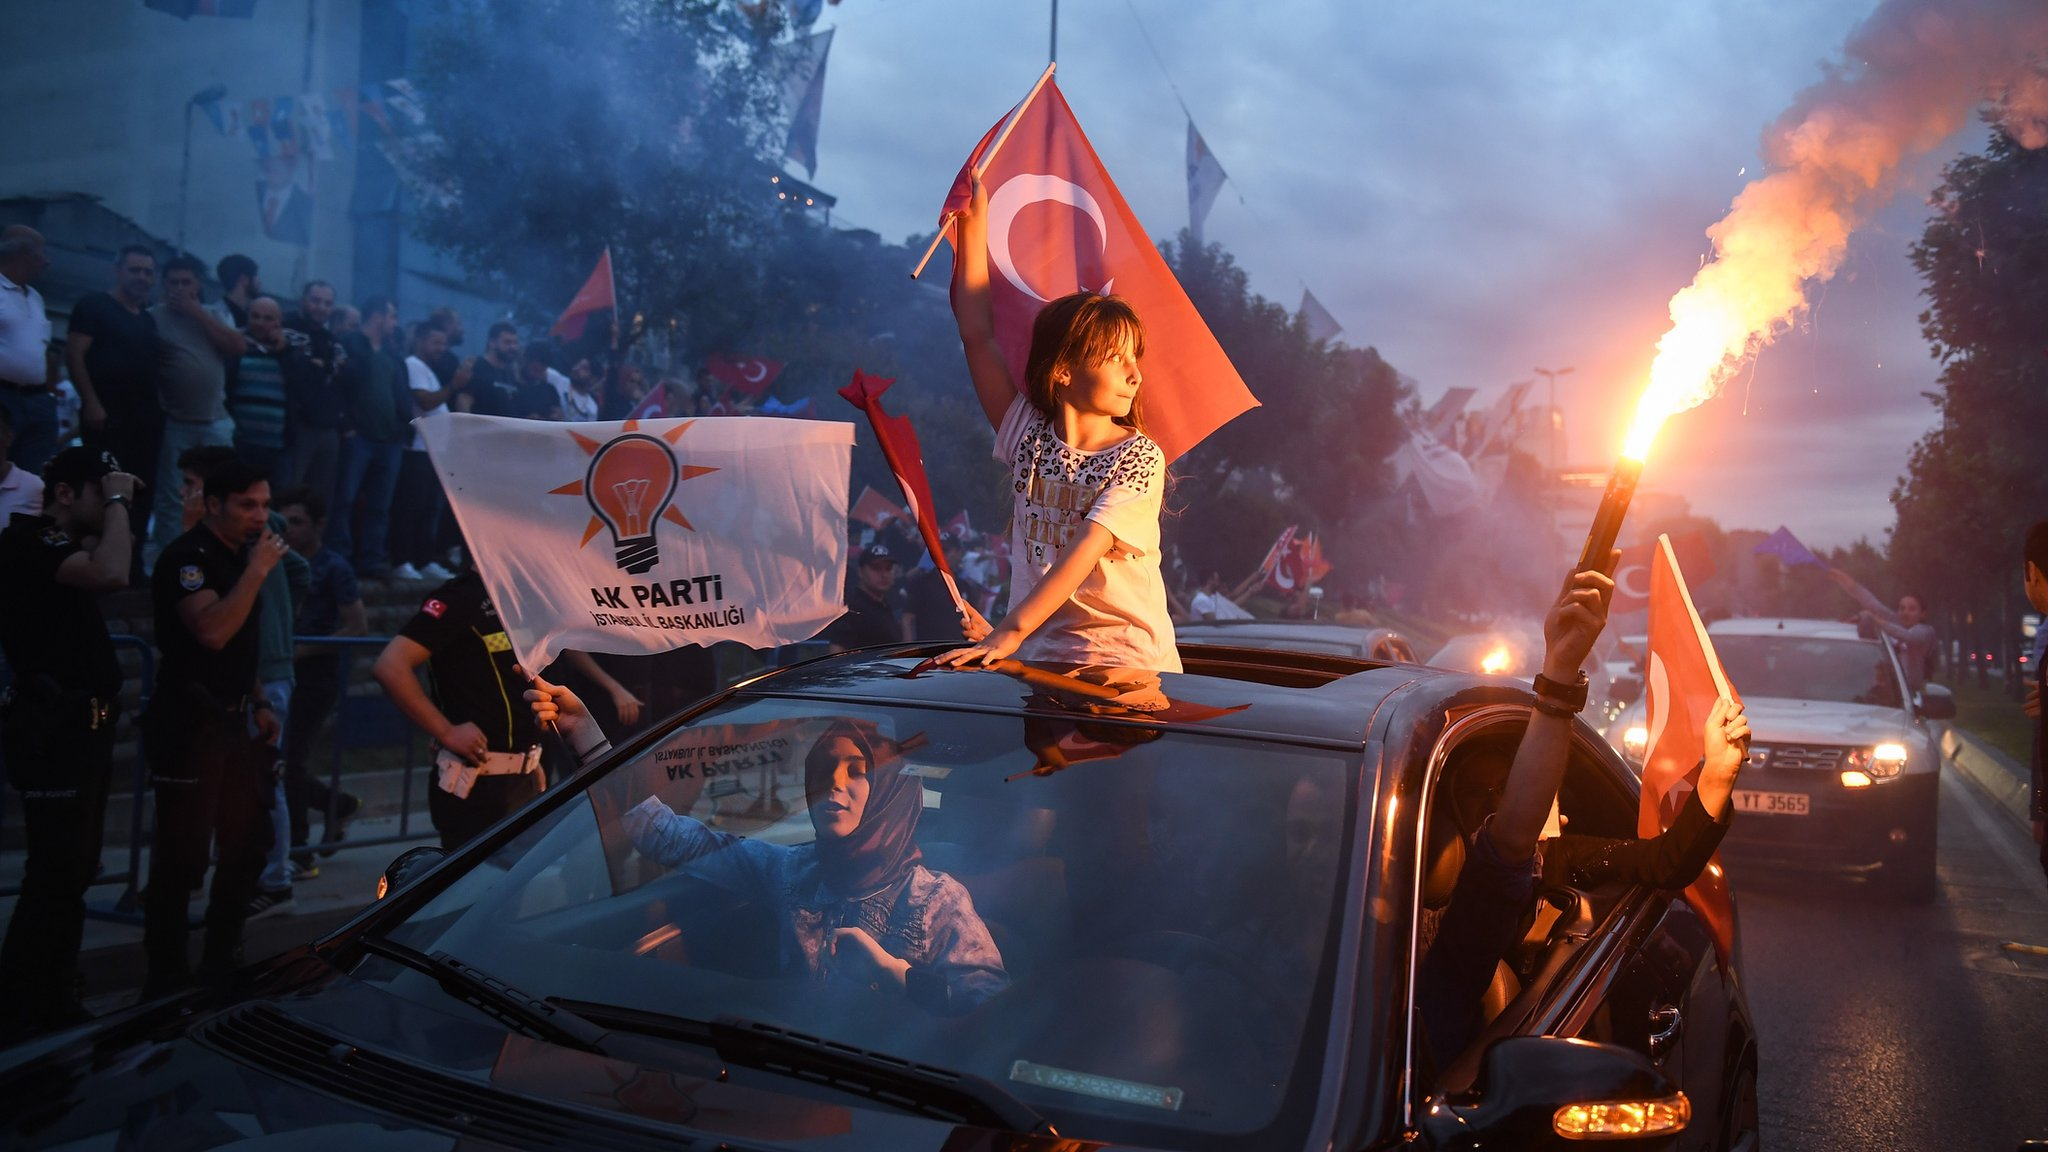 Turkey election: Erdogan wins another term as president